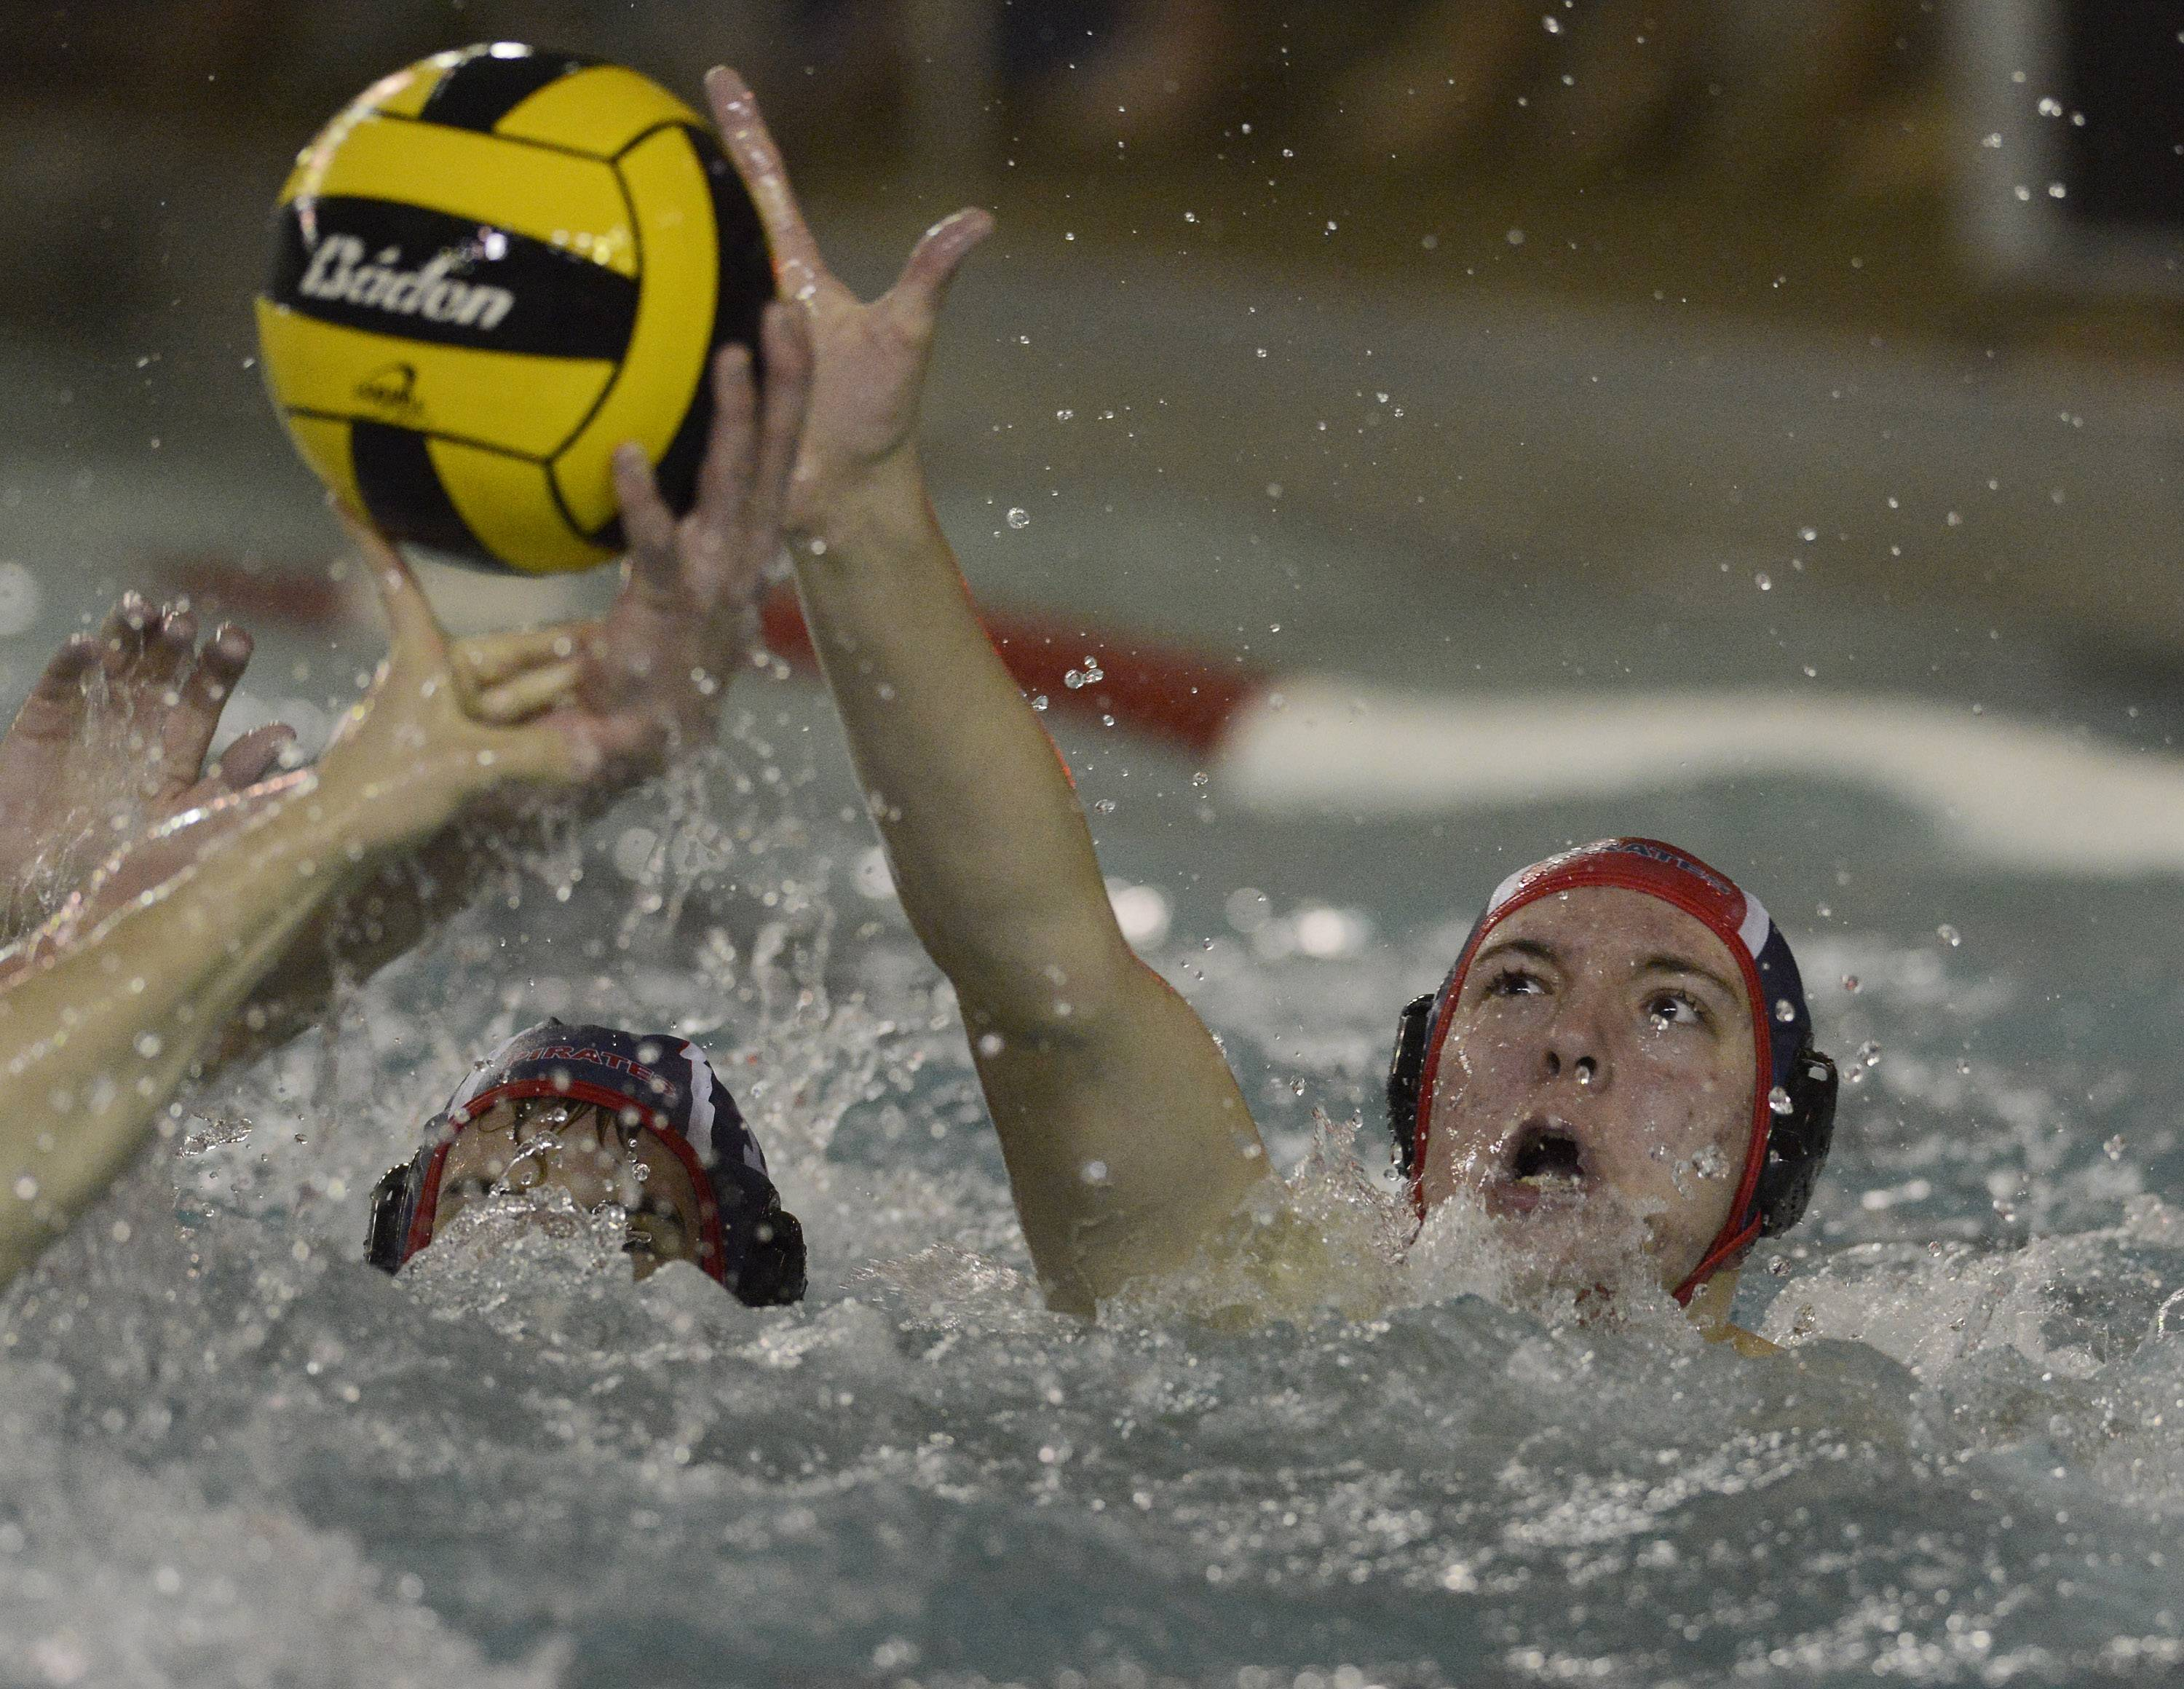 Palatine goalie Colin White knocks the ball from the hand of a Hersey player during Wednesday's match.